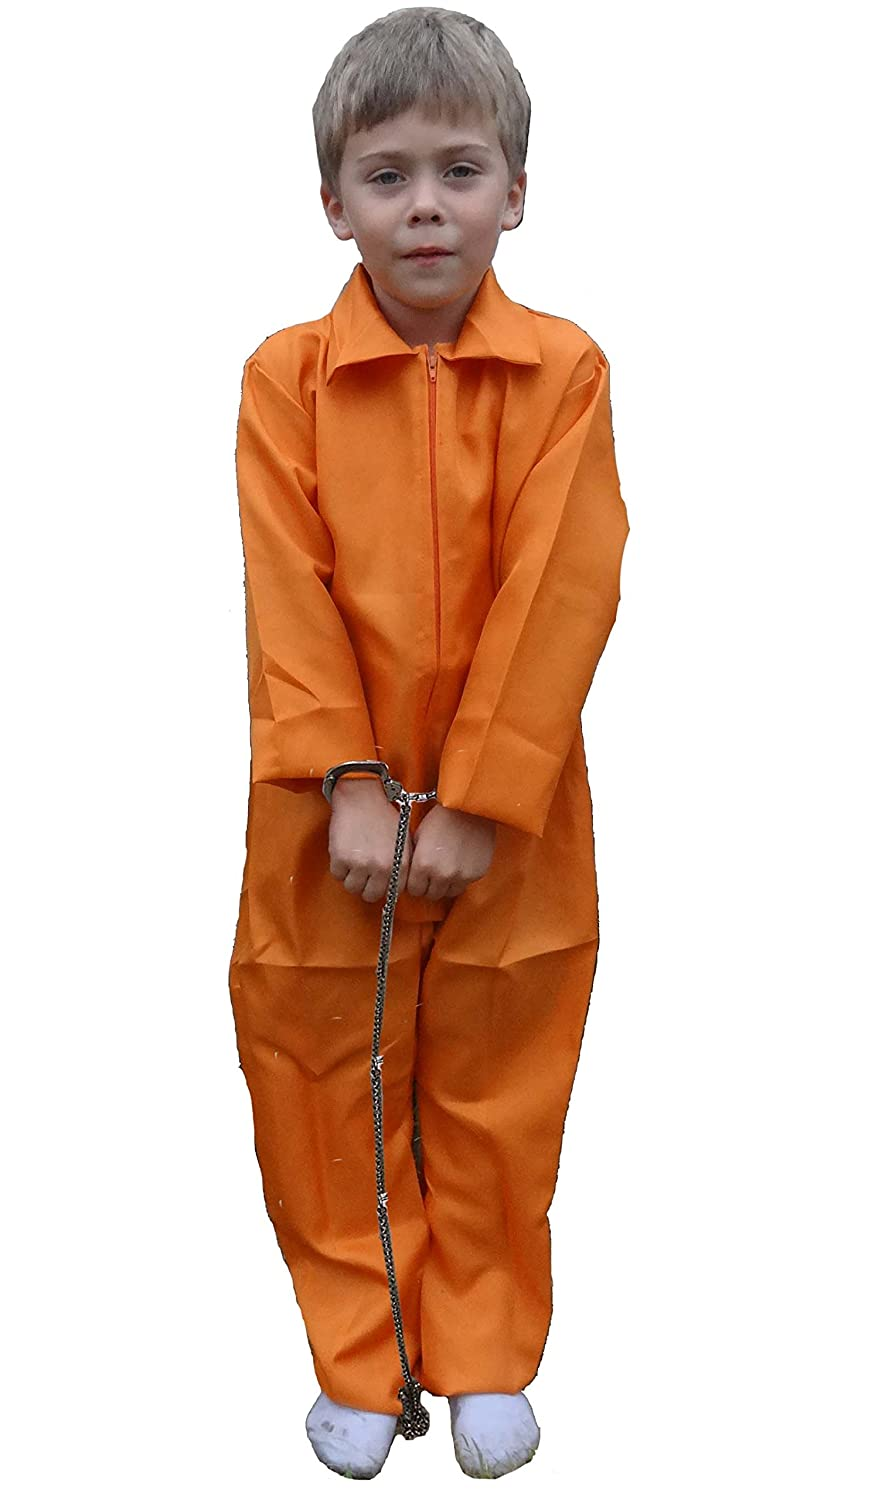 ORANGE PRISONER OVERALLS GUANTANAMO BAY CHILDS FANCY DRESS COSTUME AGE 4-6 YEARS Amazon.co.uk Toys u0026 Games  sc 1 st  Amazon UK & ORANGE PRISONER OVERALLS GUANTANAMO BAY CHILDS FANCY DRESS COSTUME ...